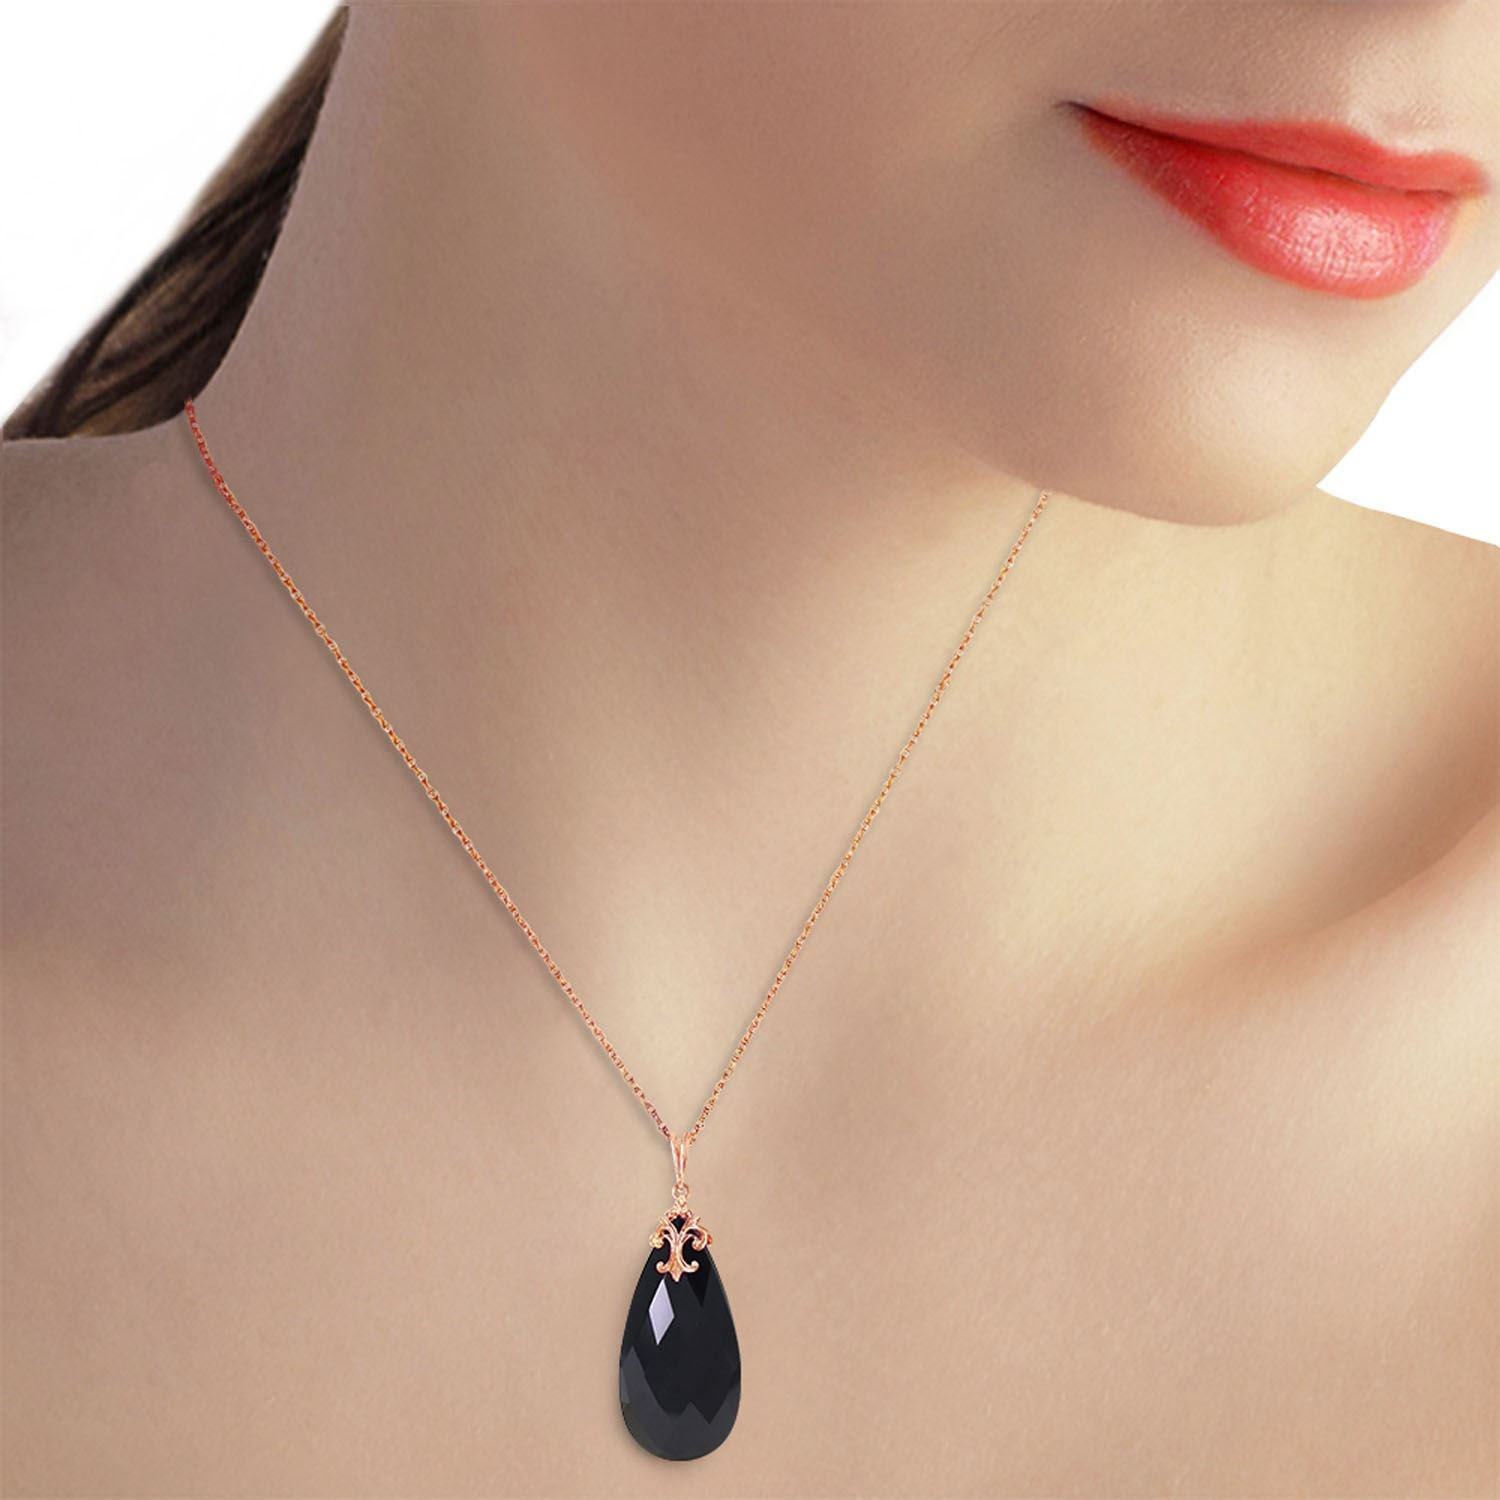 ALARRI 14K Solid Rose Gold Necklace with Briolette 31x16 mm Black Onyx with 20 Inch Chain Length